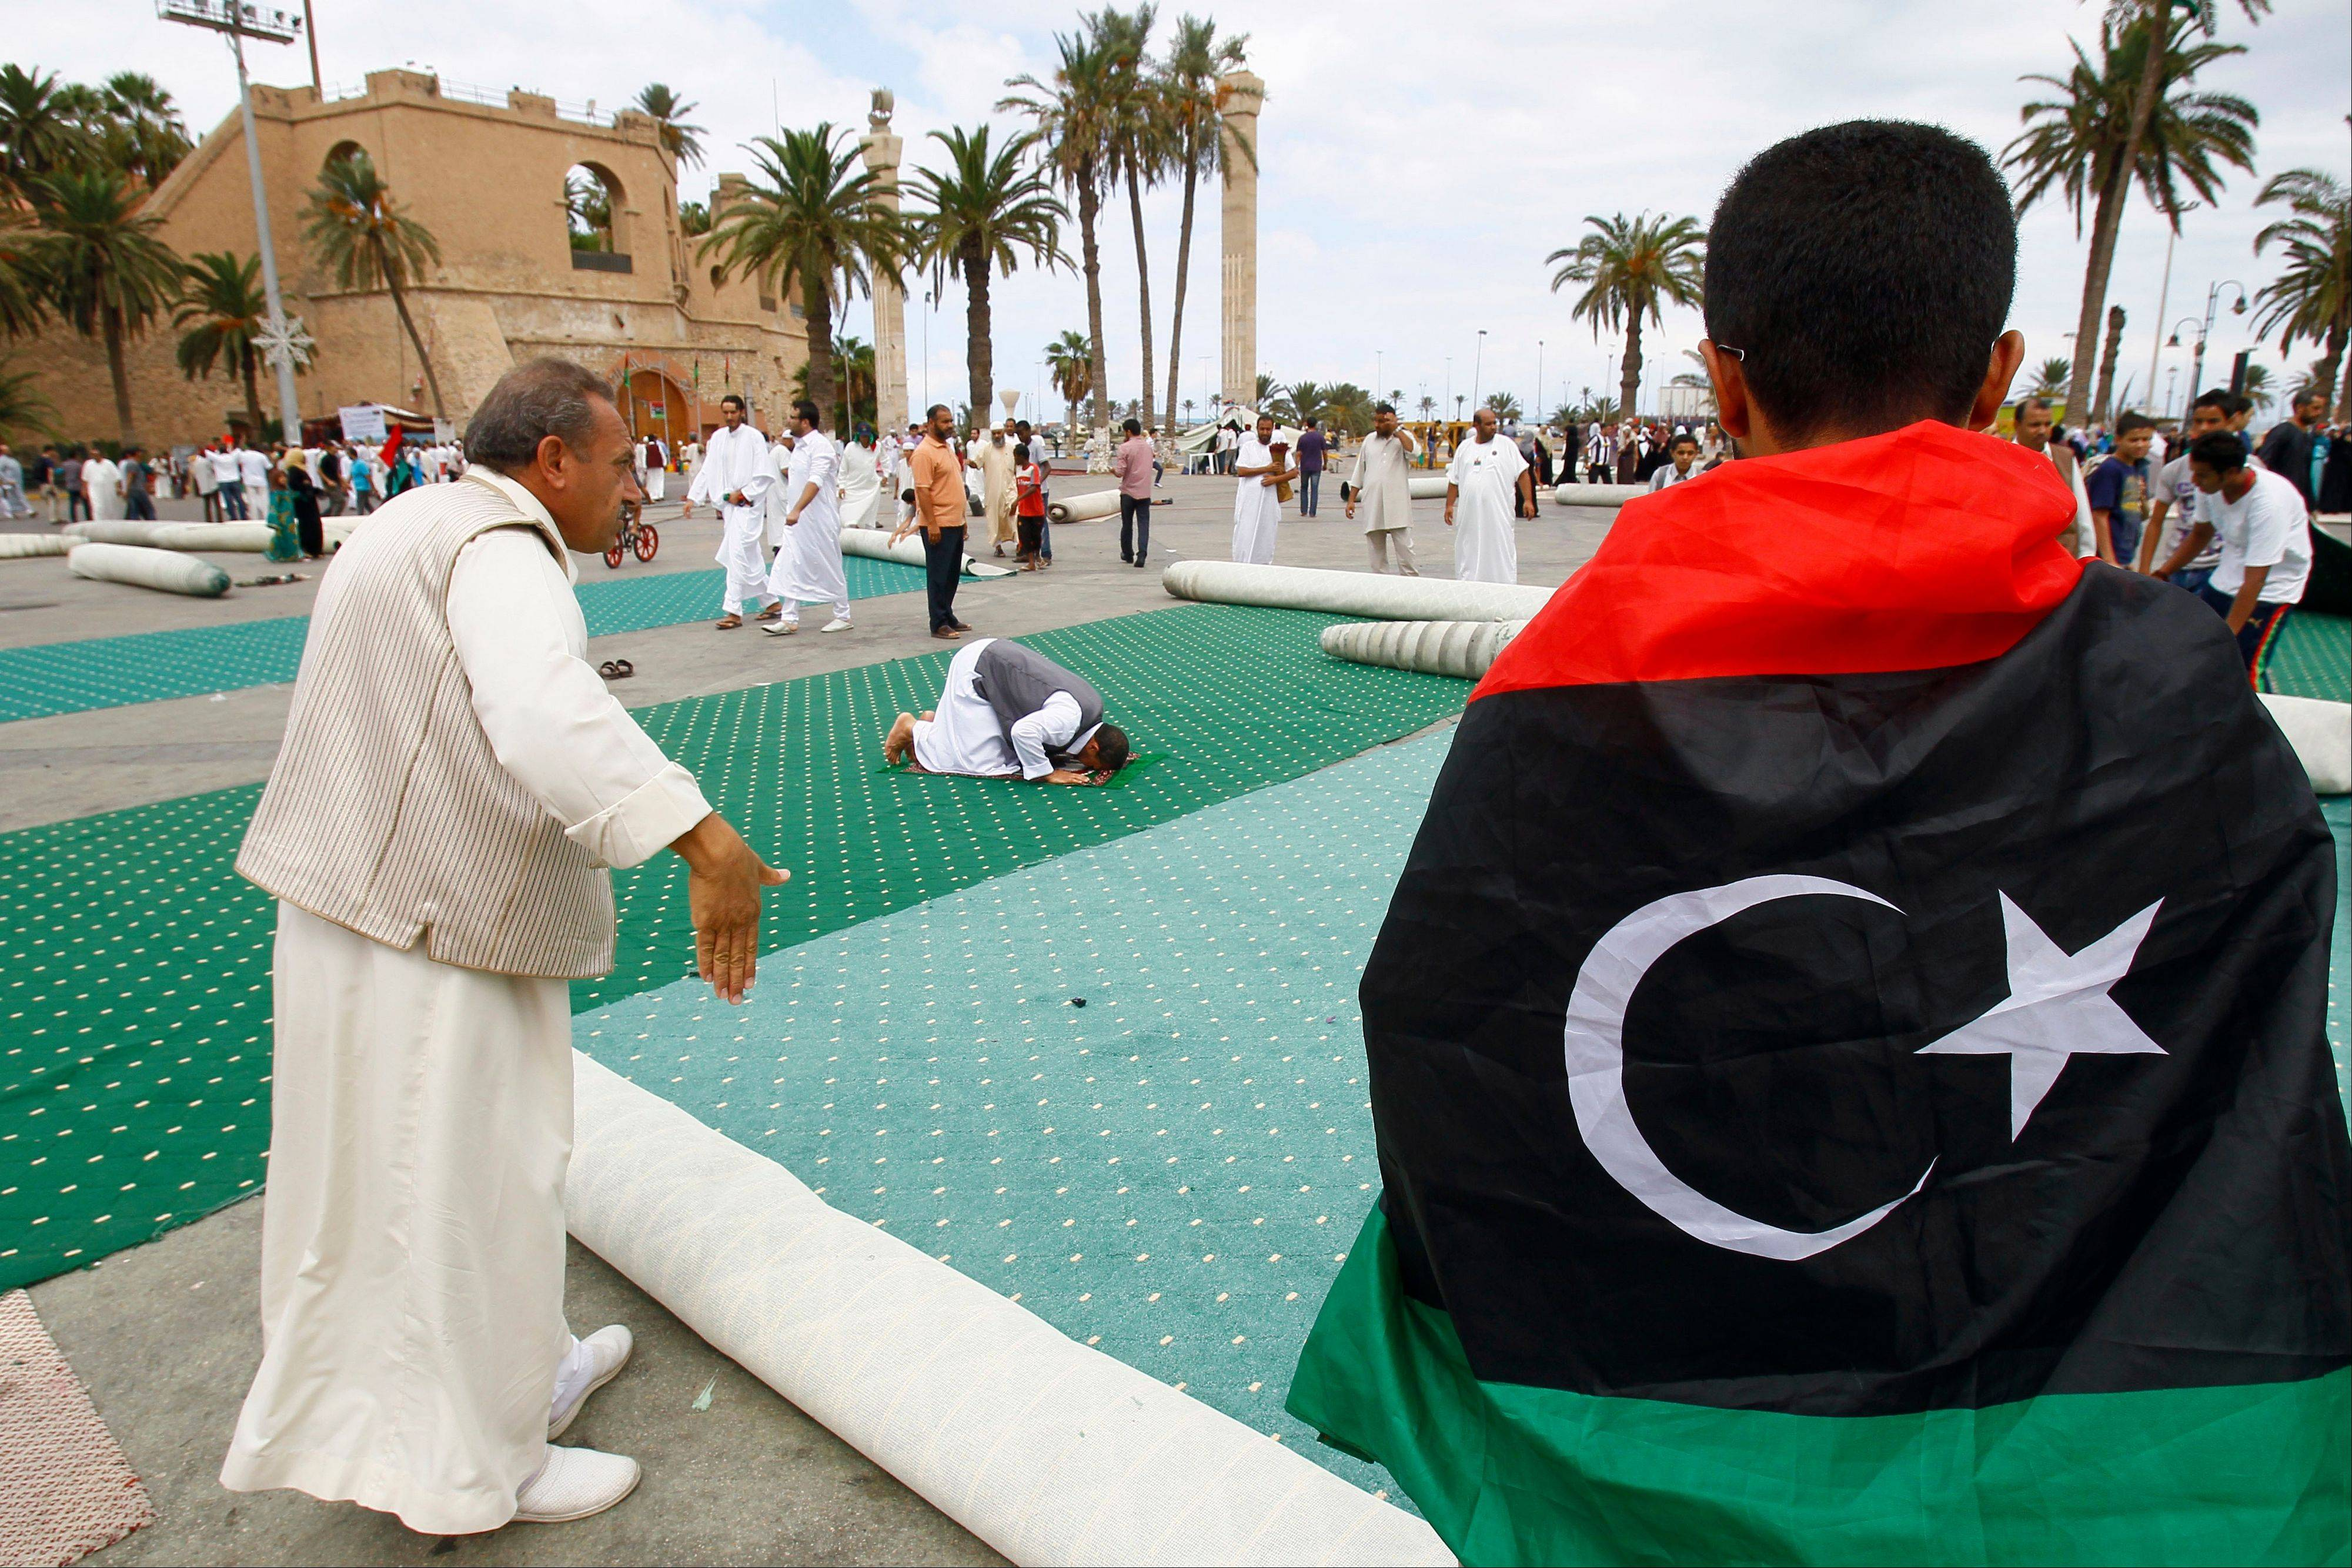 A Libyan man gestures as he arrives late for prayer as revolutionaries and residents of Tripoli roll up the carpet after the weekly Muslim Friday prayers at the former Green Square, renamed Martyrs Square, in Tripoli, Libya.